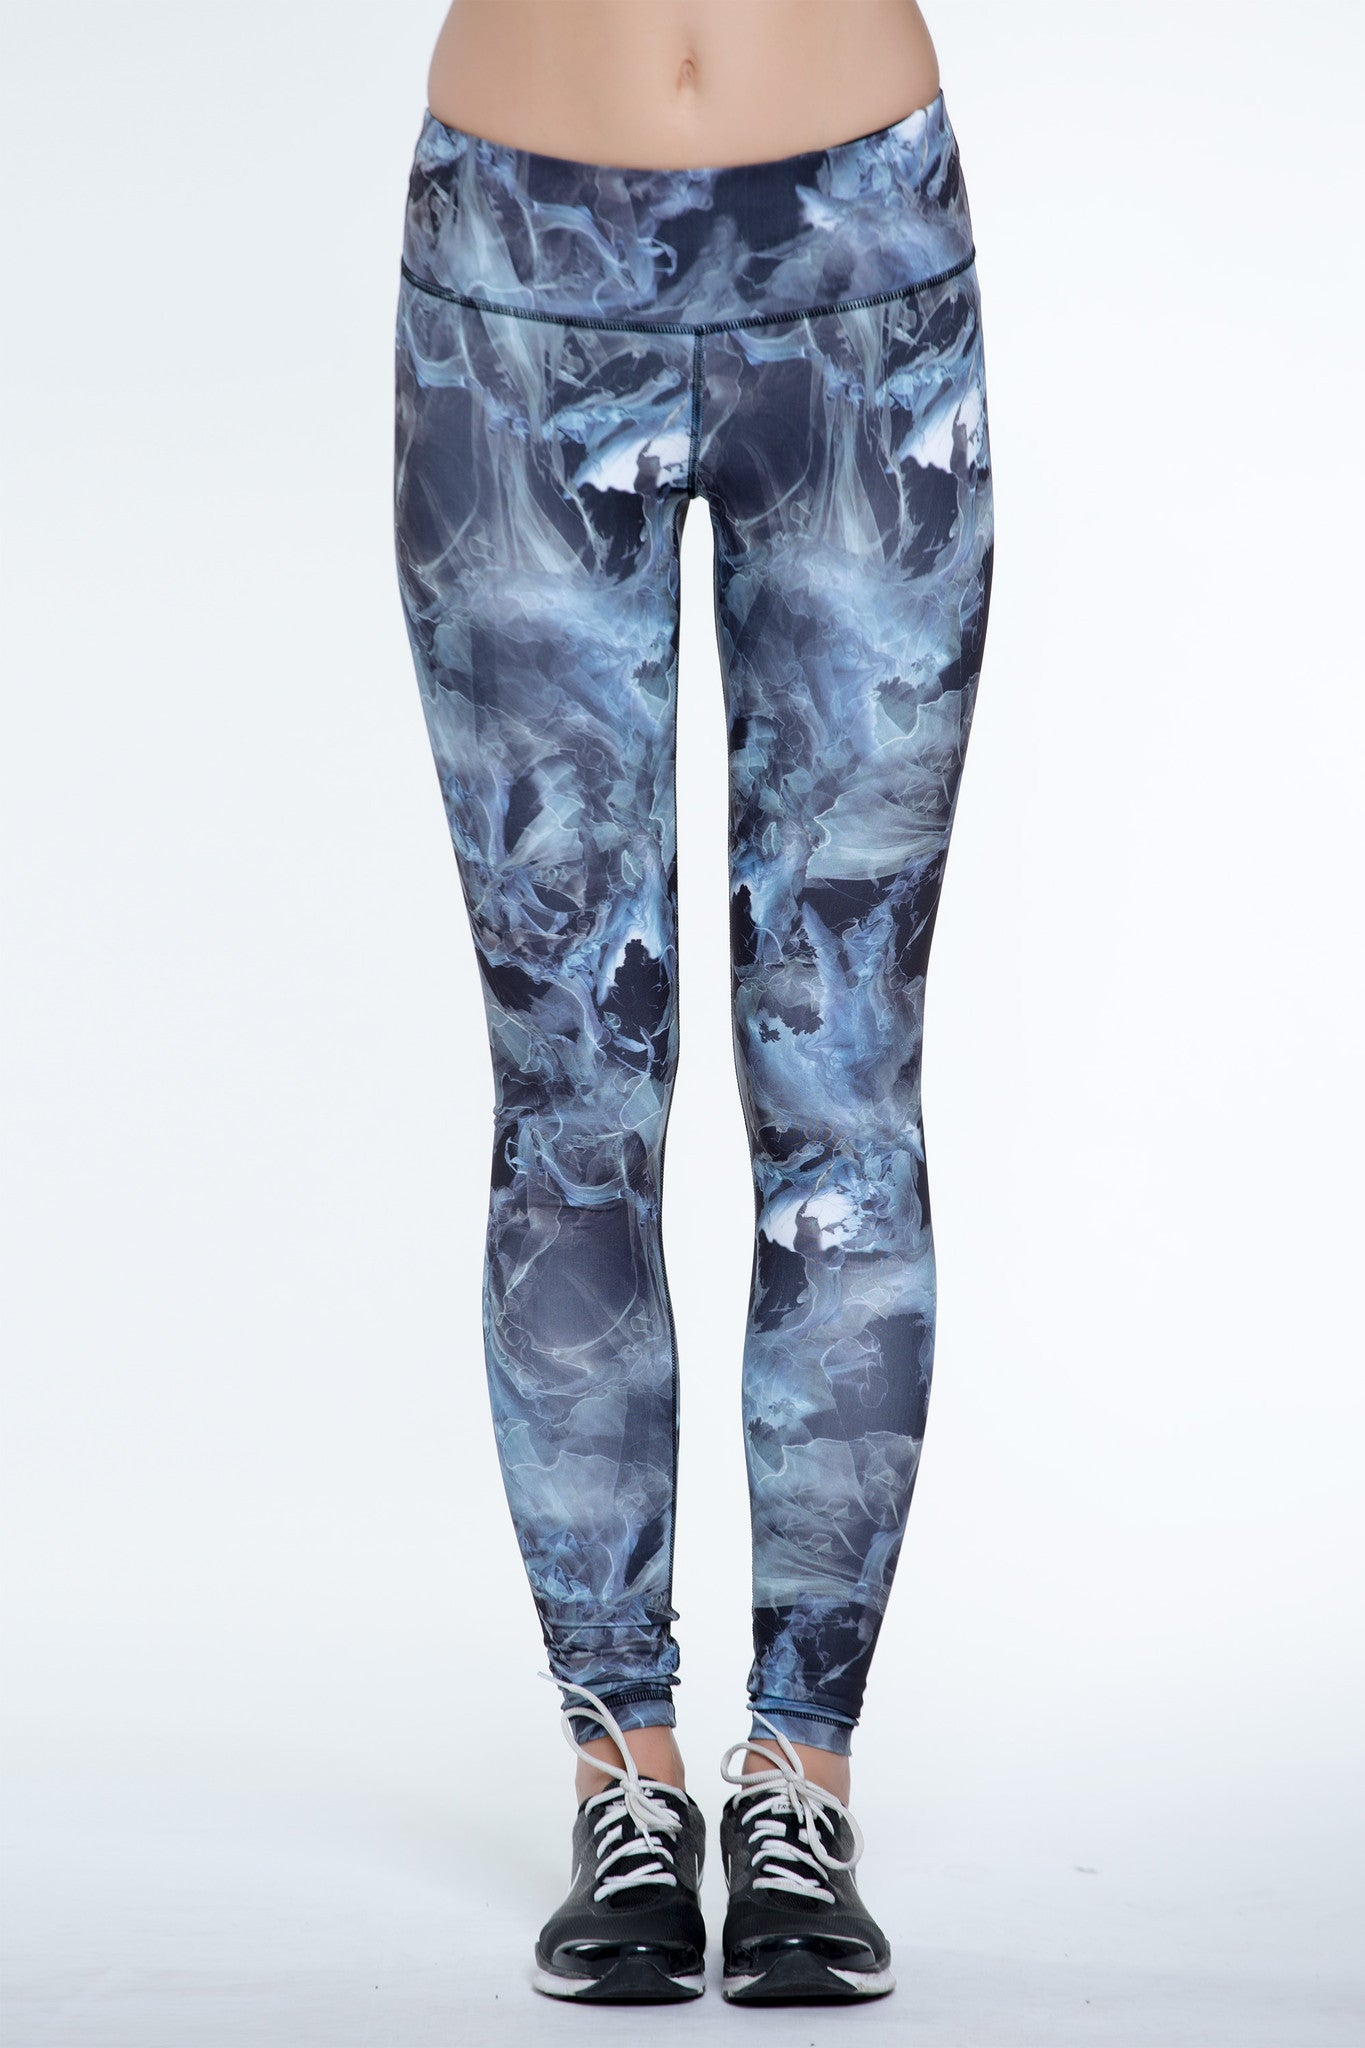 Lucky Graphic Legging - Storm